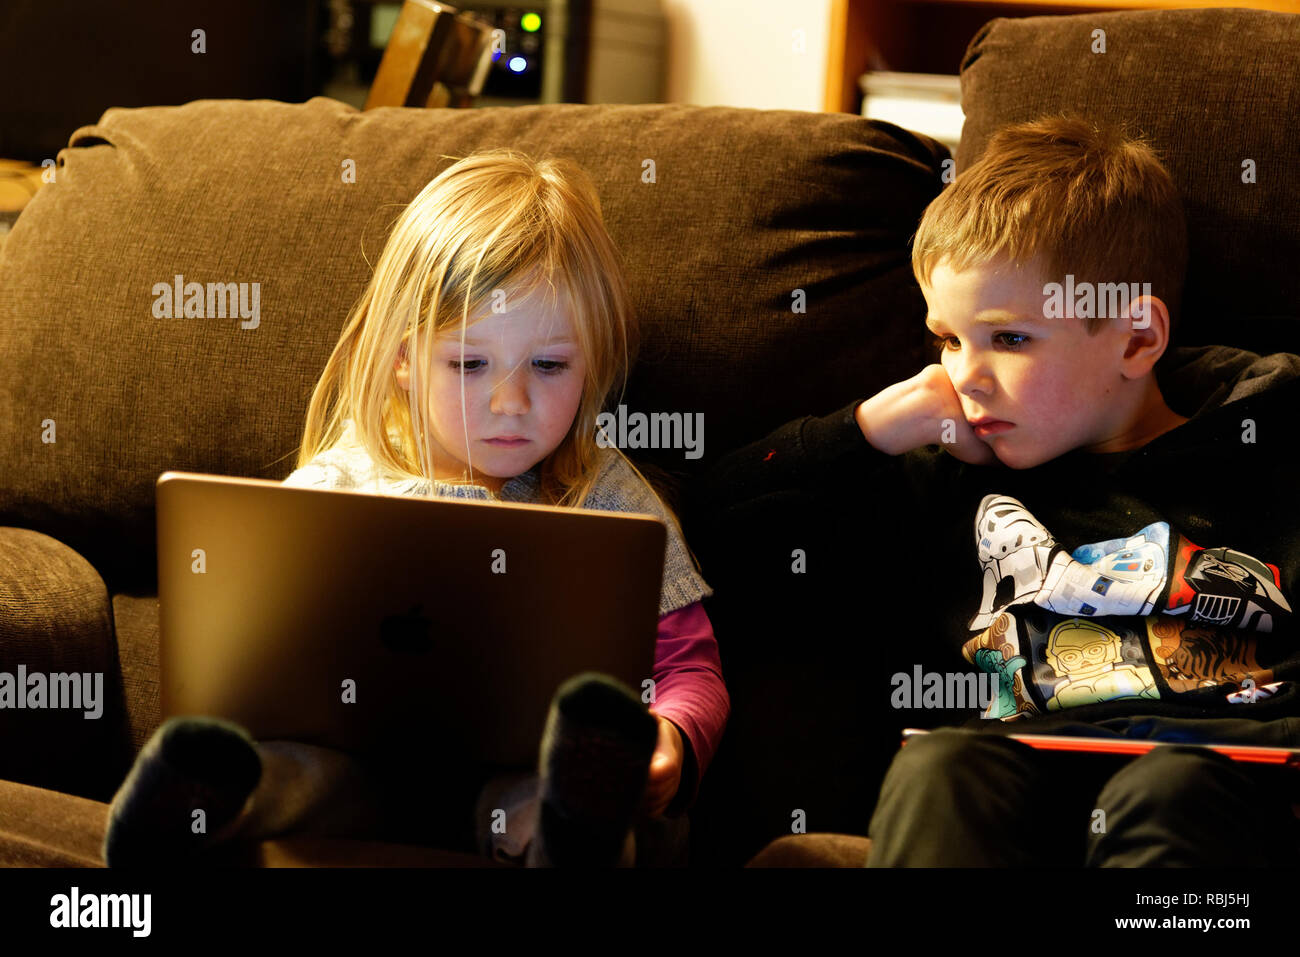 A little girl (4 yrs old) sat on a sofa using a laptop computer while her brother (6 yrs old) watches. Stock Photo